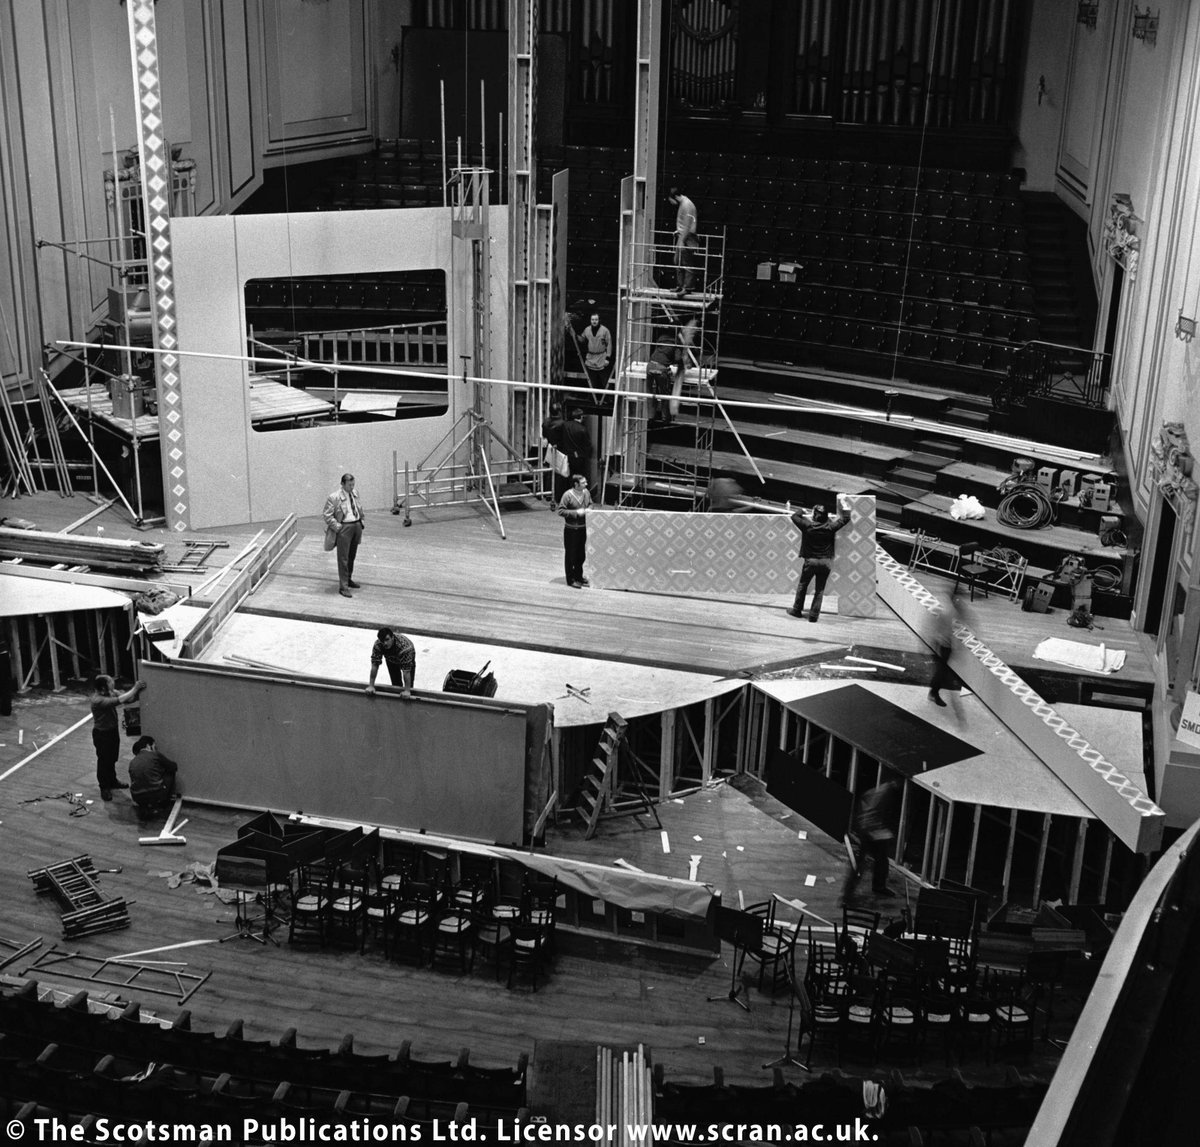 Getting ready for #Eurovision? #DYK that Edinburgh's Usher Hall hosted the 1972 Eurovision Song Contest? These @Scranlife archive images show the Lothian Road venue being prepared for the big show, and the eventual winner, Greek singer Vicky Leandros representing Luxembourg.